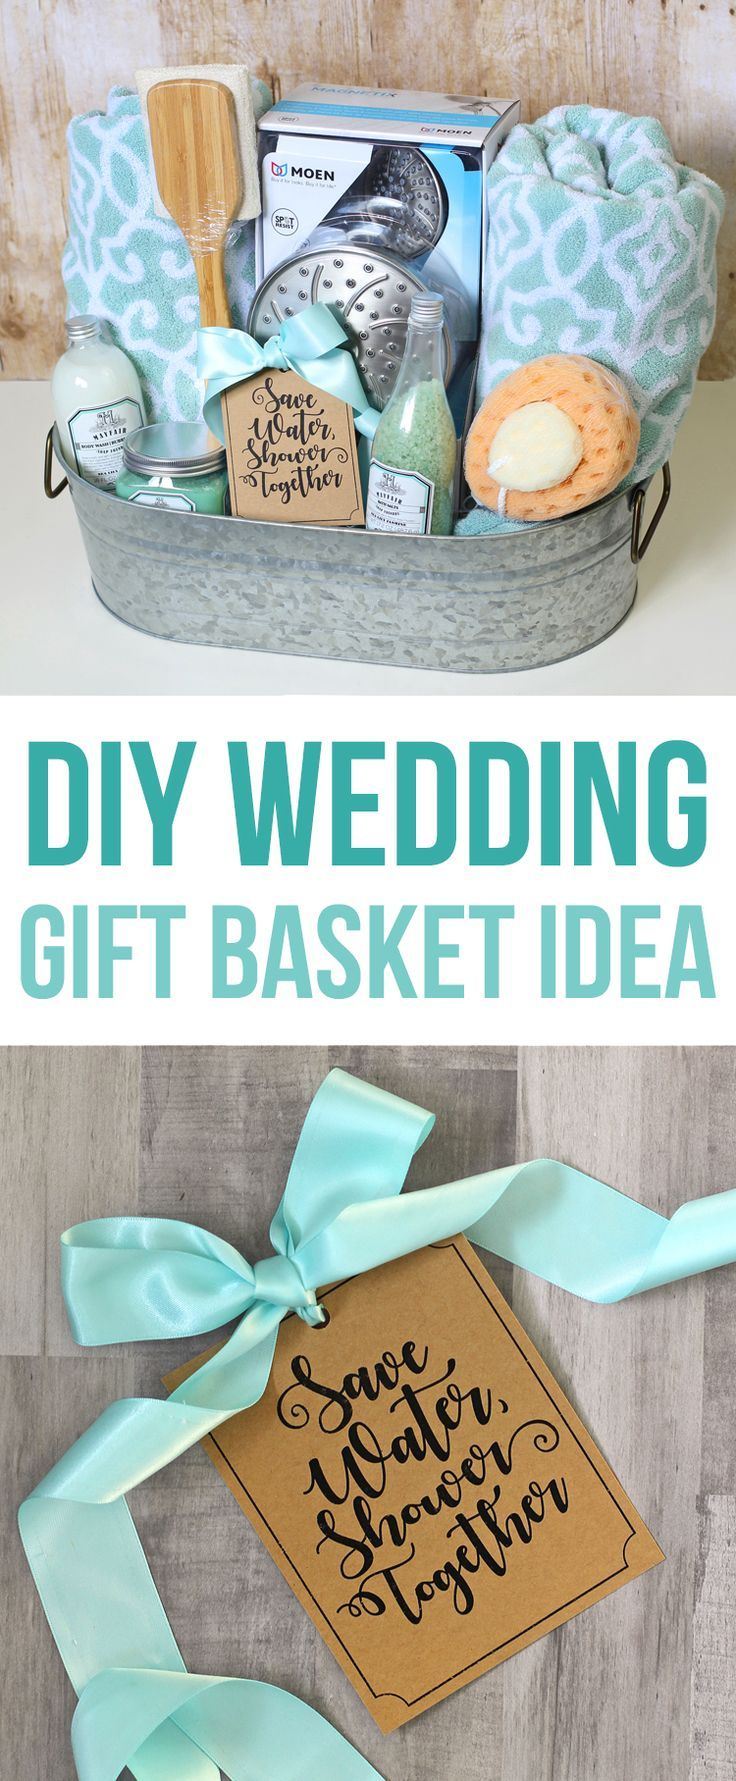 This Diy Wedding Gift Basket Idea Has A Shower Theme And